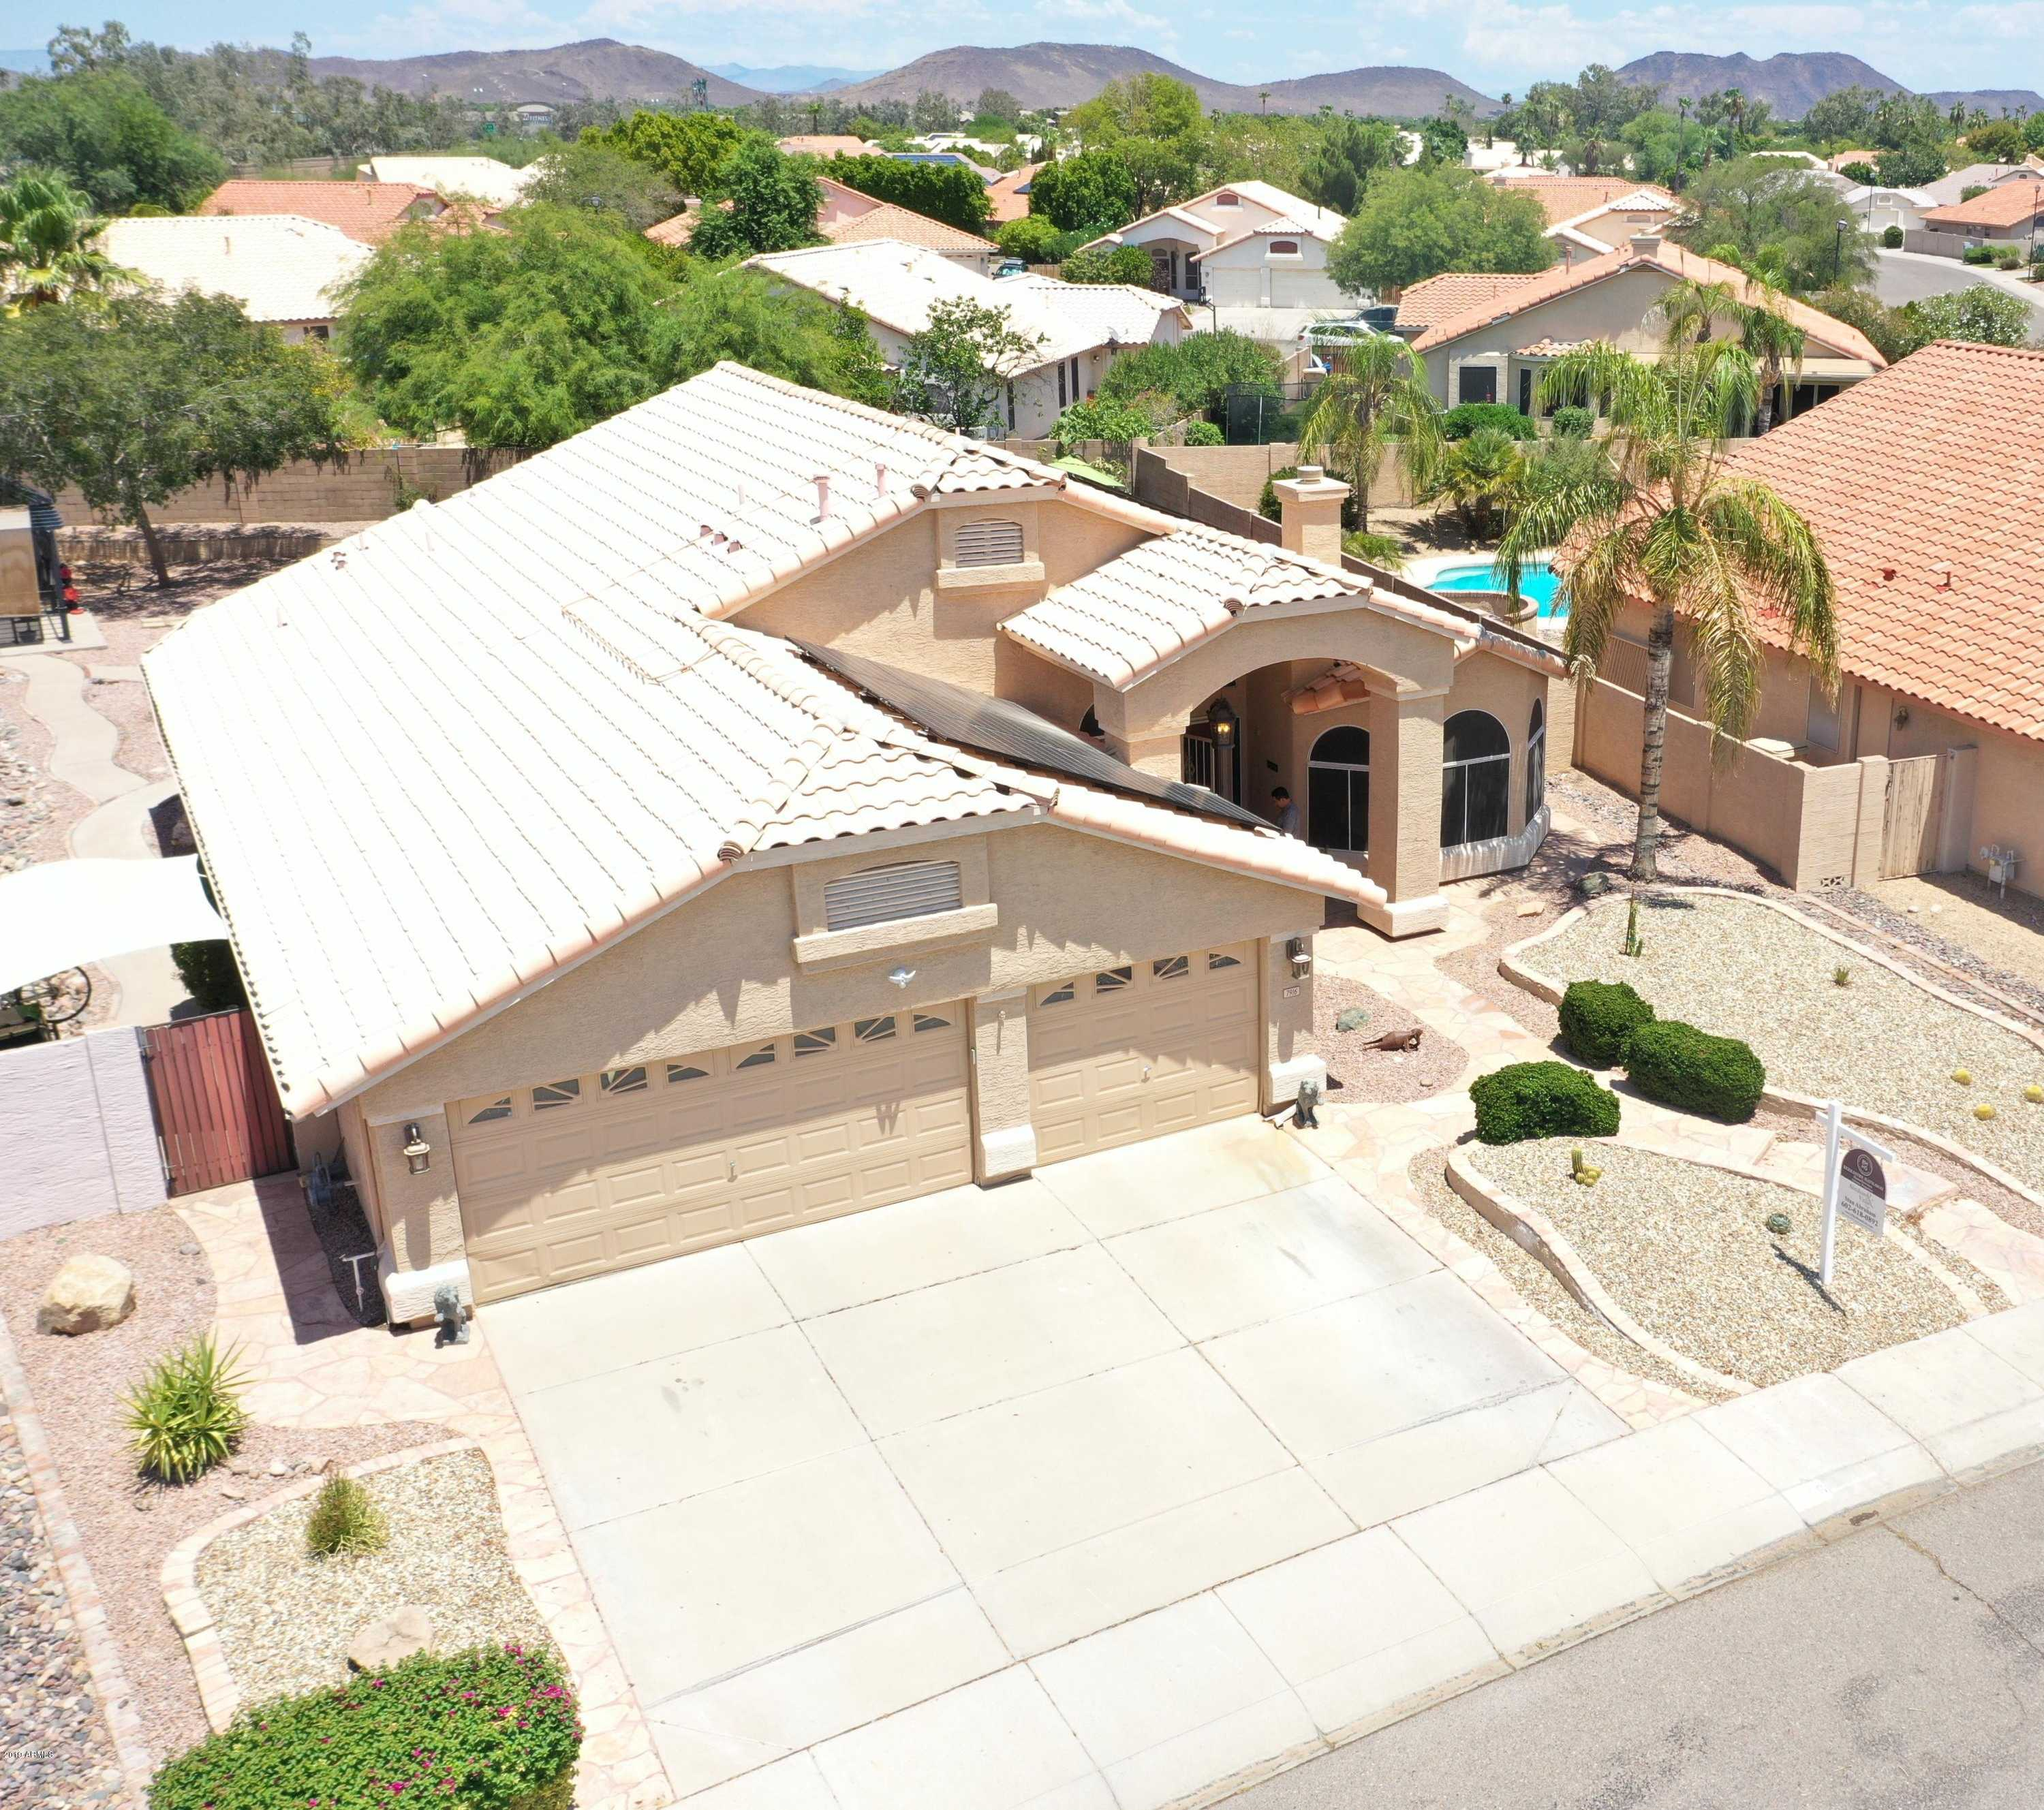 $374,900 - 4Br/2Ba - Home for Sale in Continental At Arrowhead Ranch, Glendale